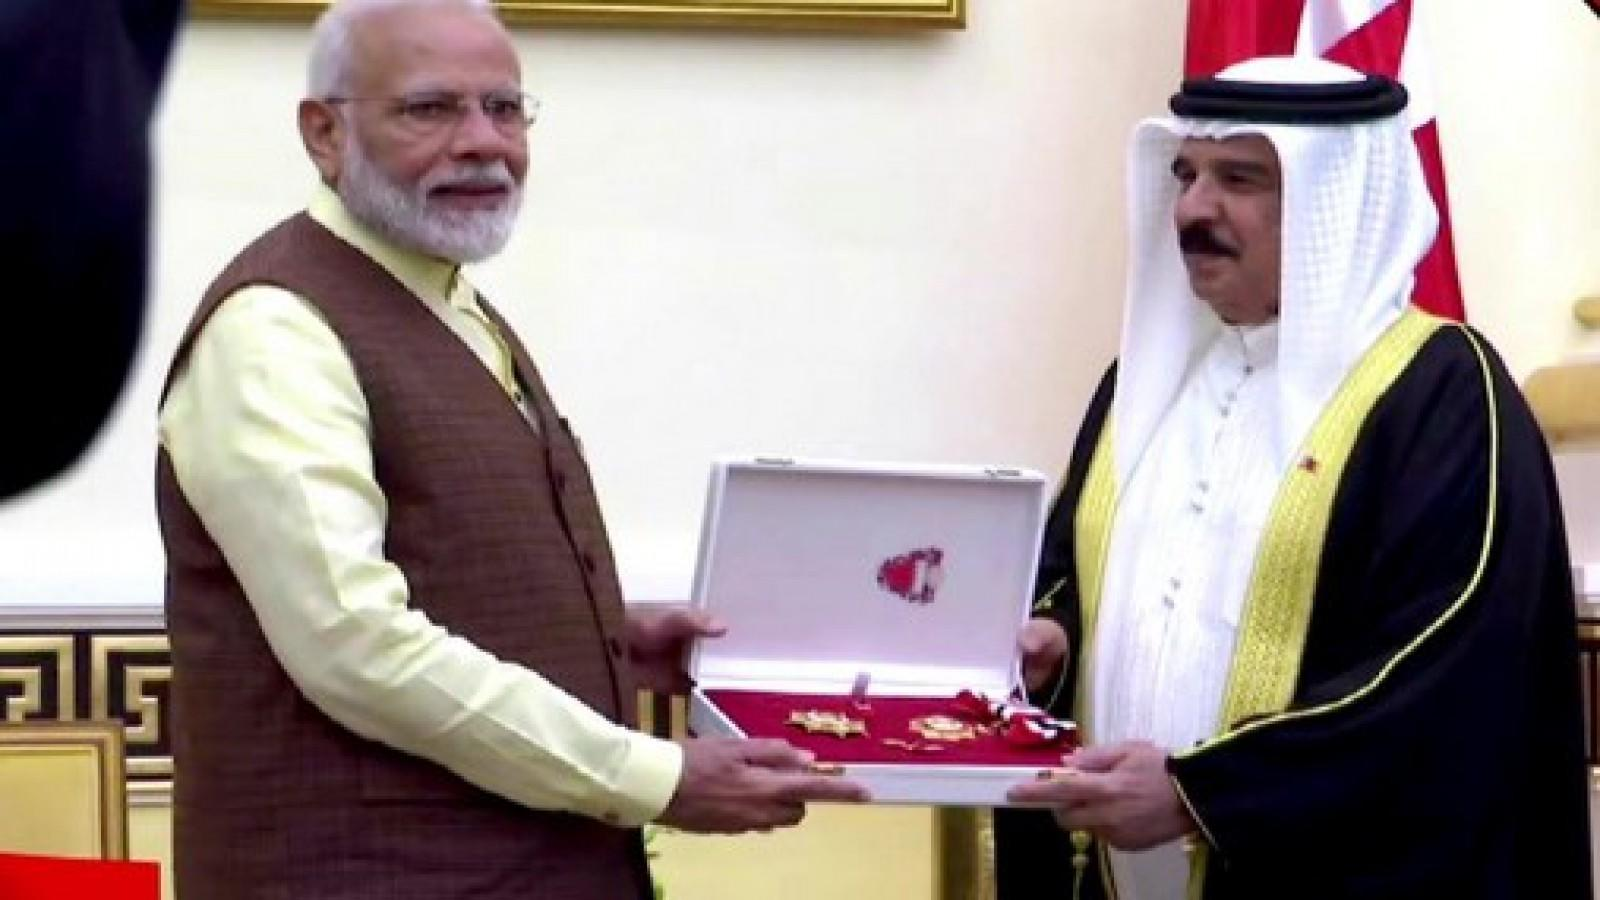 king-of-bahrain-confers-title-of-the-king-hamad-order-of-renaissance-on-pm-modi